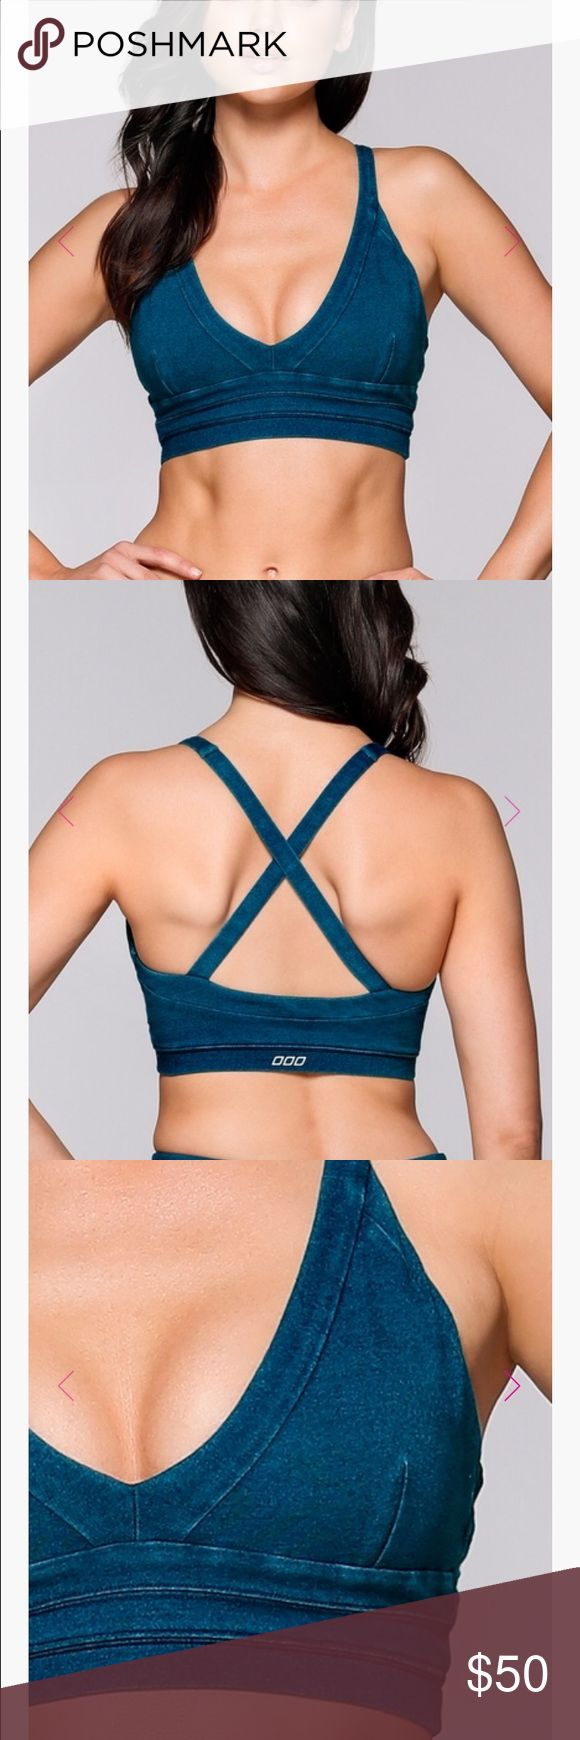 NWOT Lorna Jane denim sports bra New without tags. Perfect condition, only selling because fit isn't quite right on me. Size small with removable cups. Note the fourth pic for tech details. Amazing sports bra! Lorna Jane Intimates & Sleepwear Bras